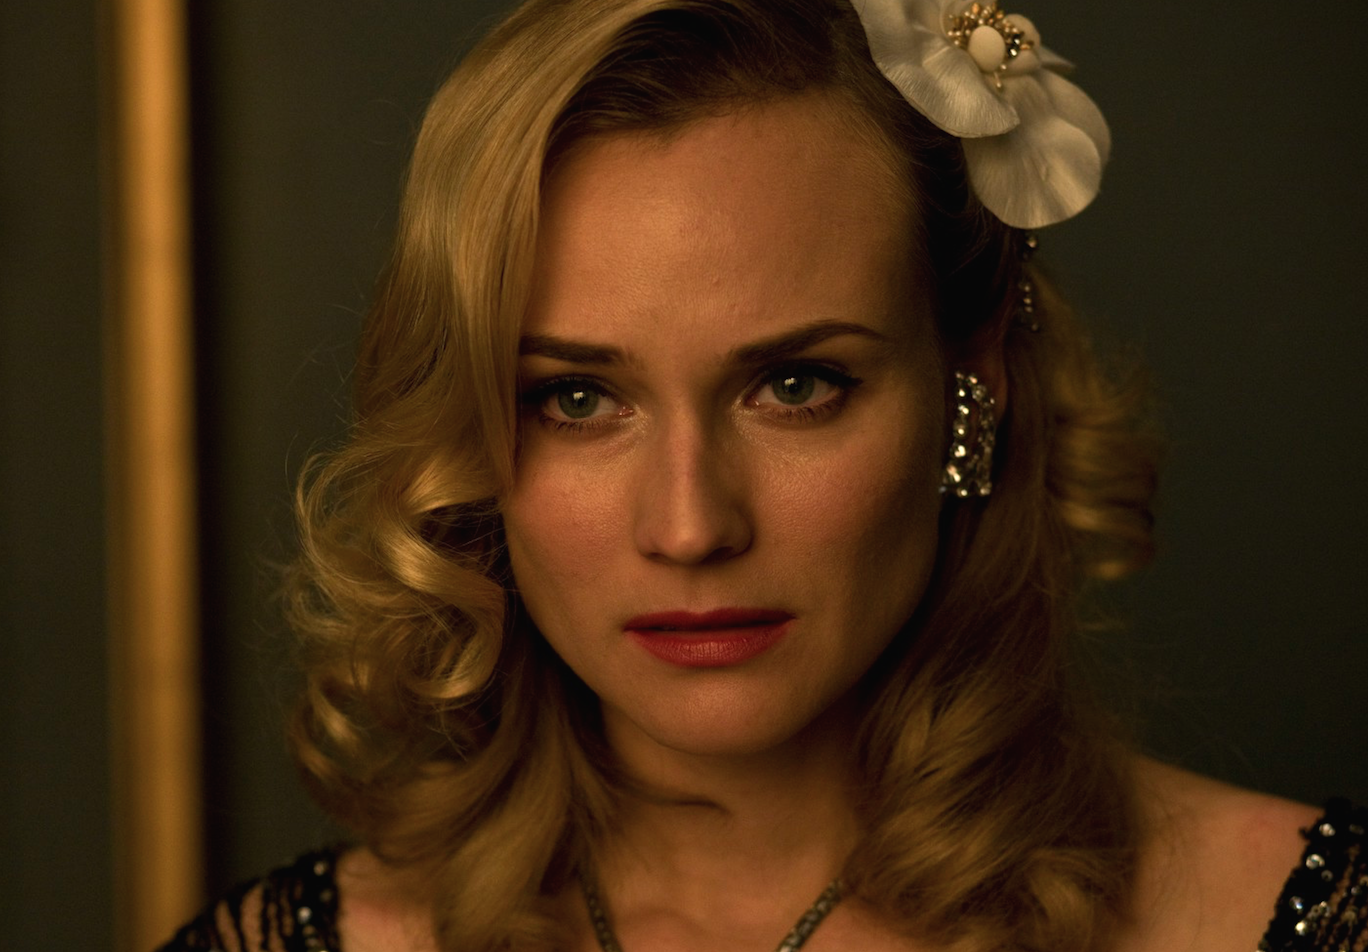 Diane Kruger: Quentin Tarantino 'Never Abused His Power' During the Making of 'Inglourious Basterds'